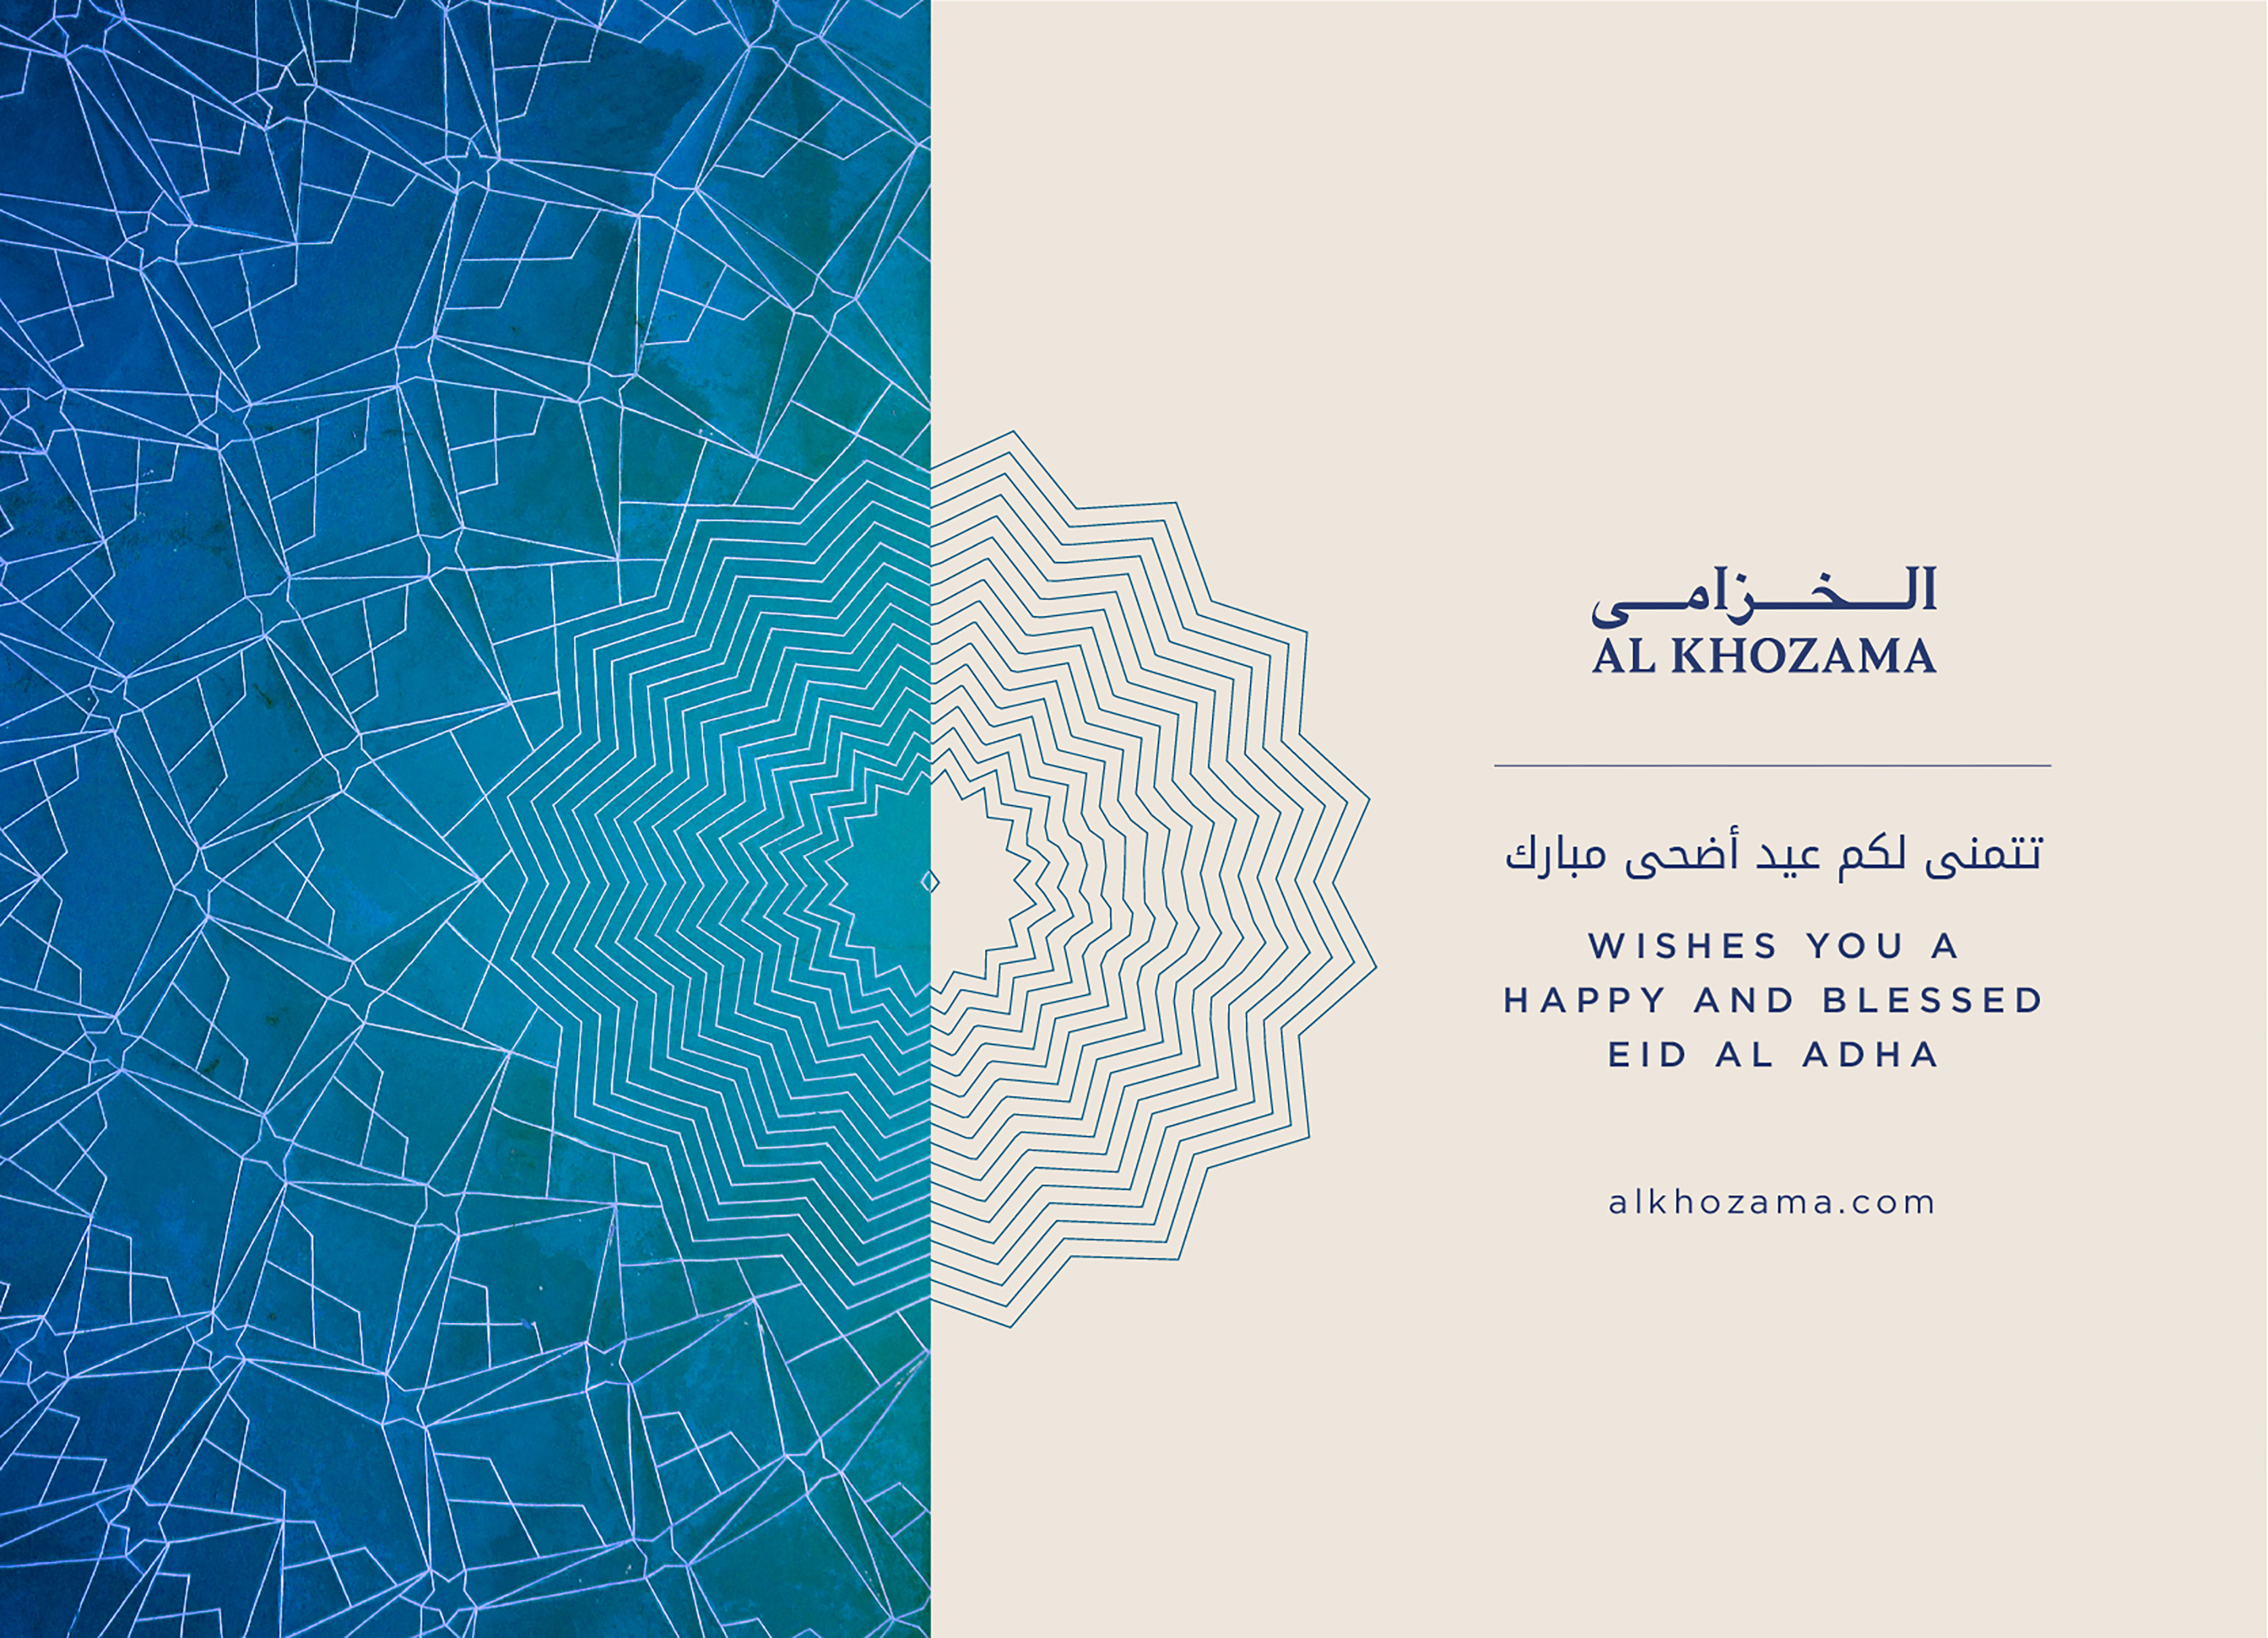 Eid Al Adha Greetings Al Khozama Management Company